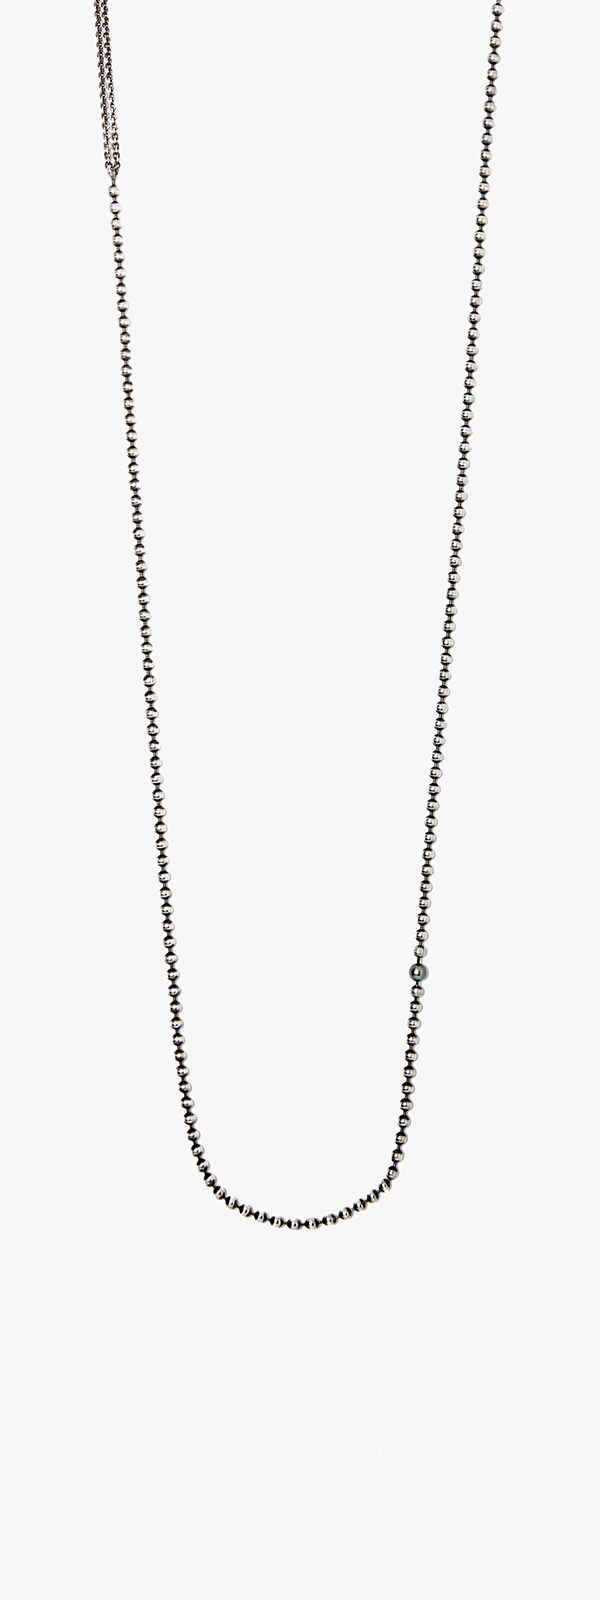 Image of Pearl & Ball Chain Necklace